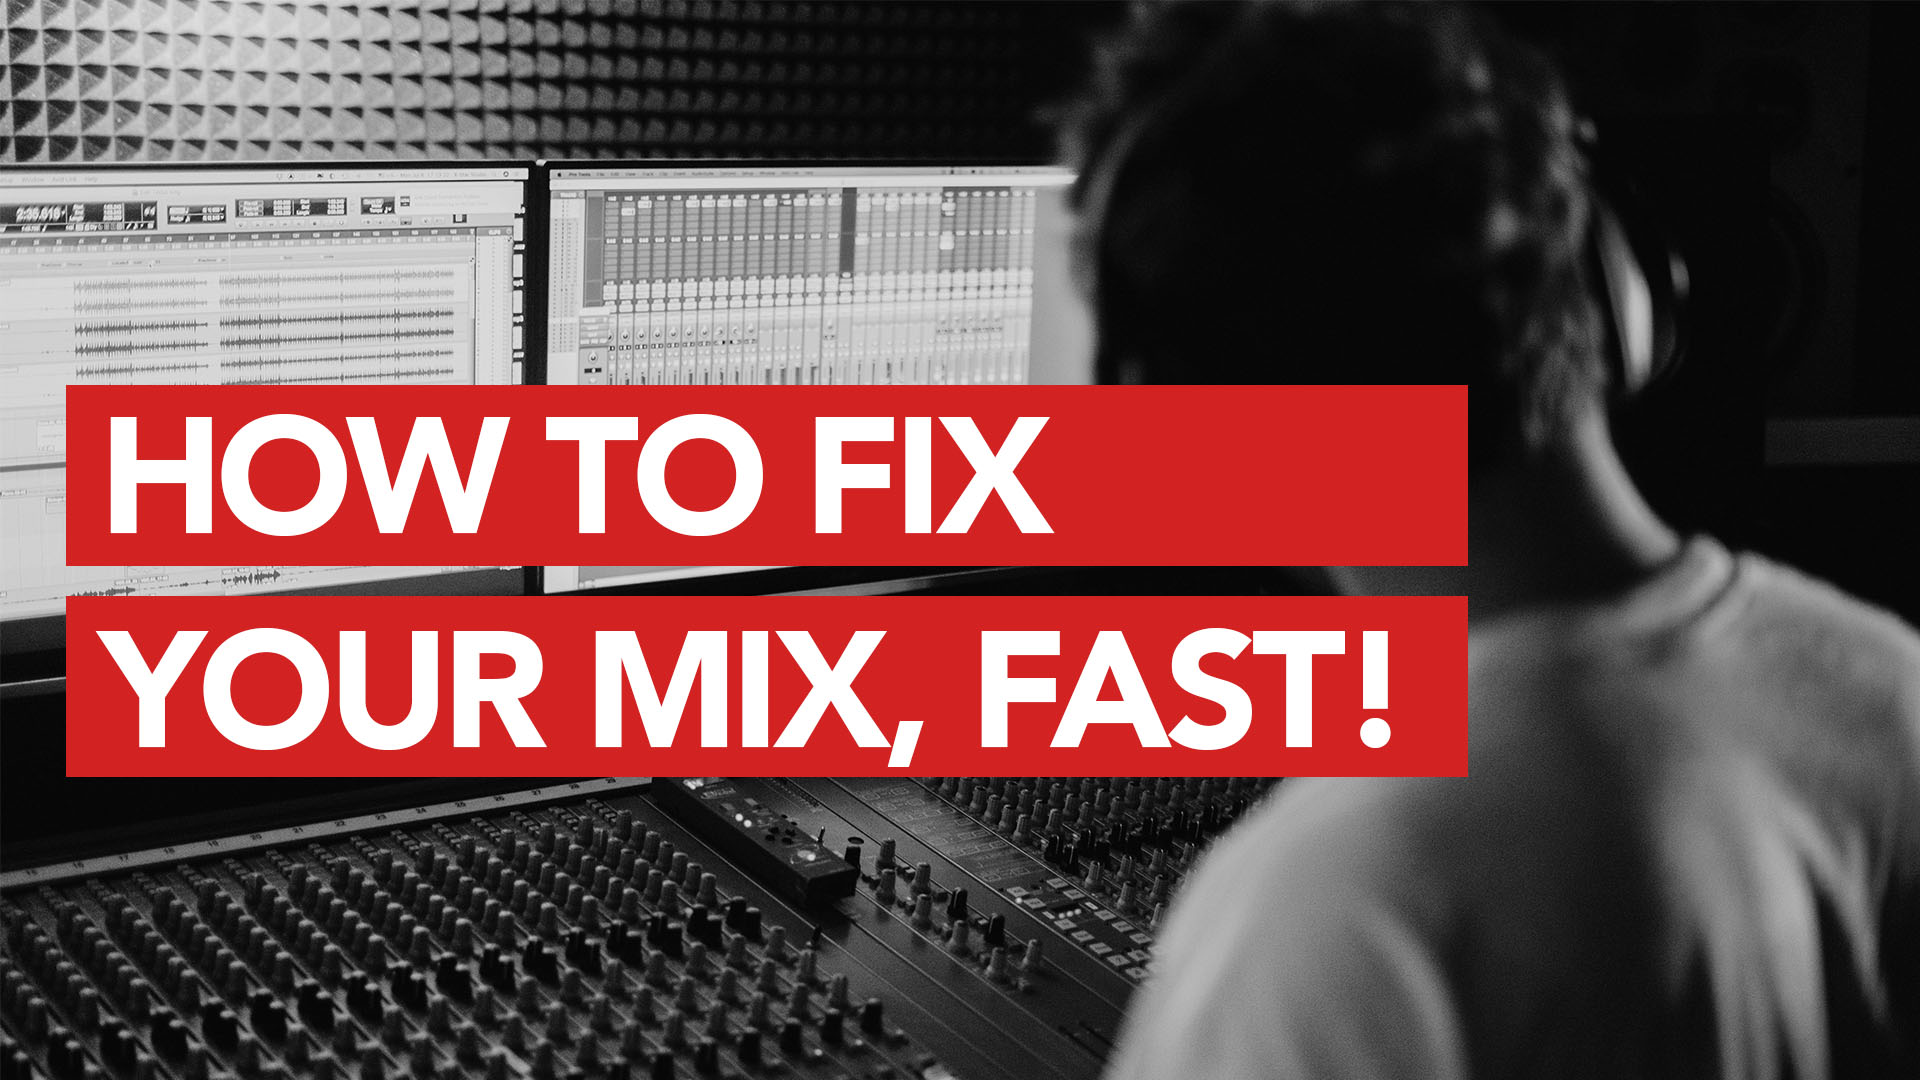 How to Fix Your Mix, Fast!